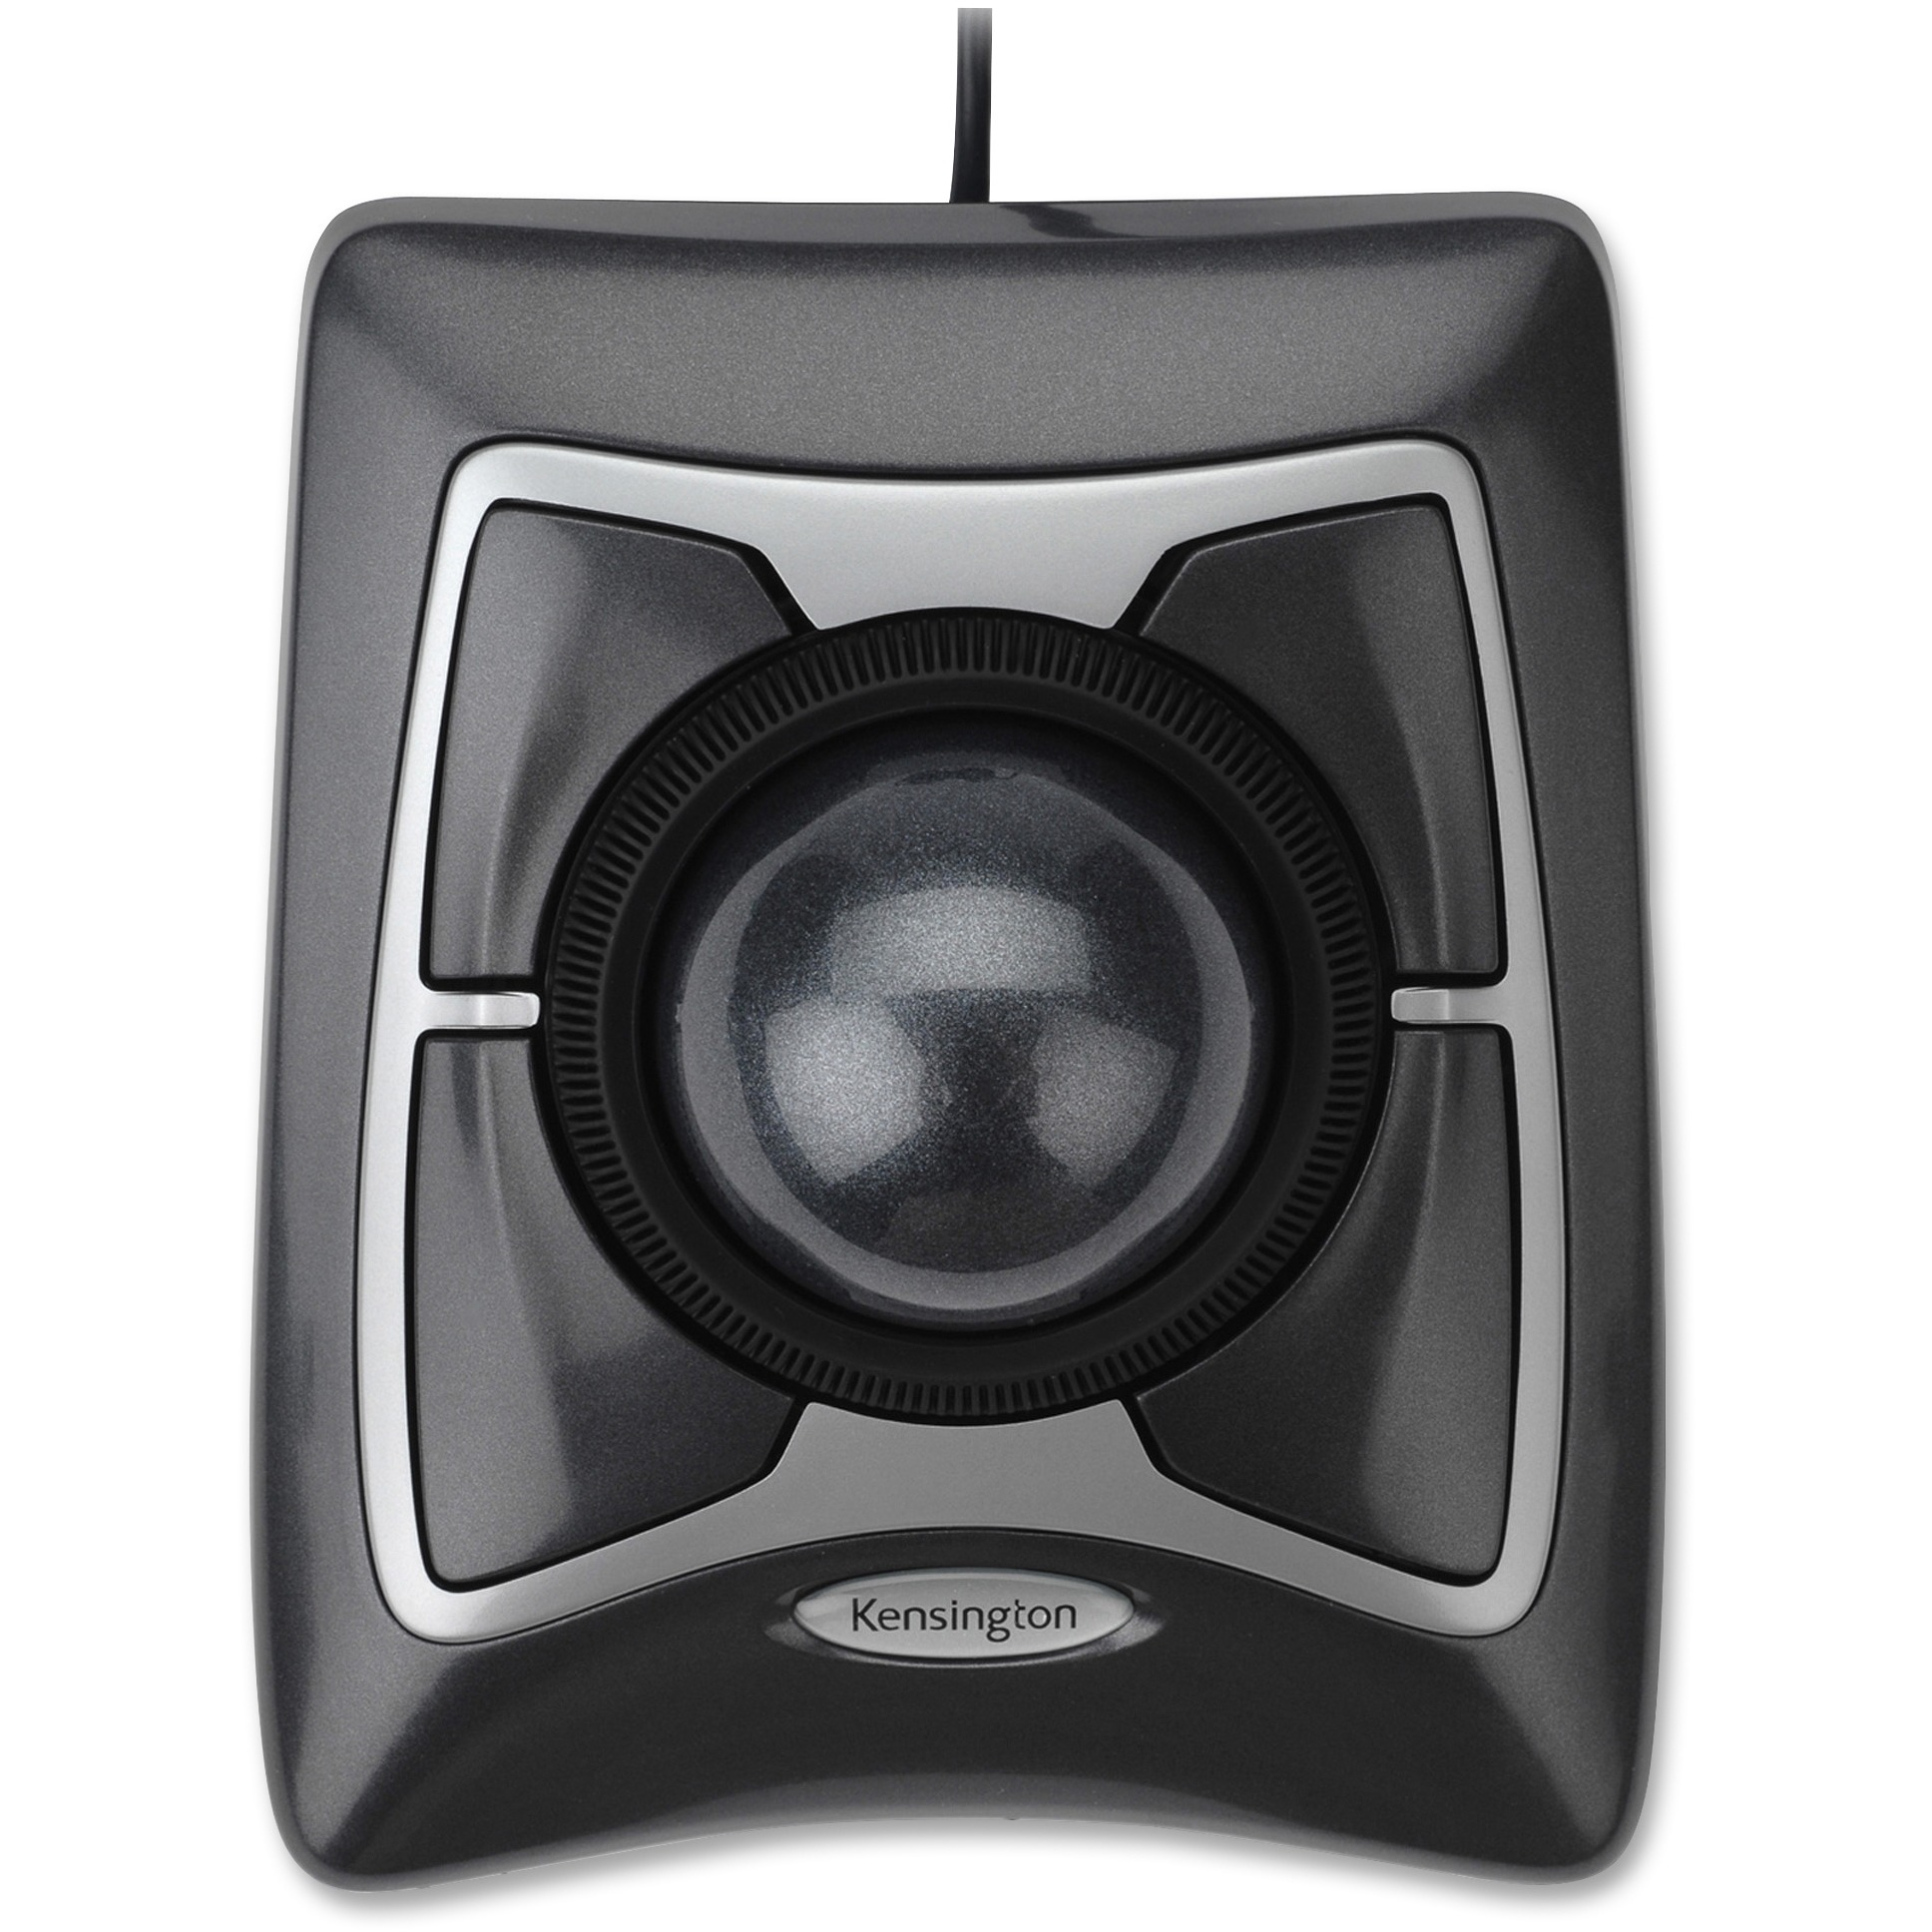 Kensington Expert Mouse 64325 Trackball by Kensington